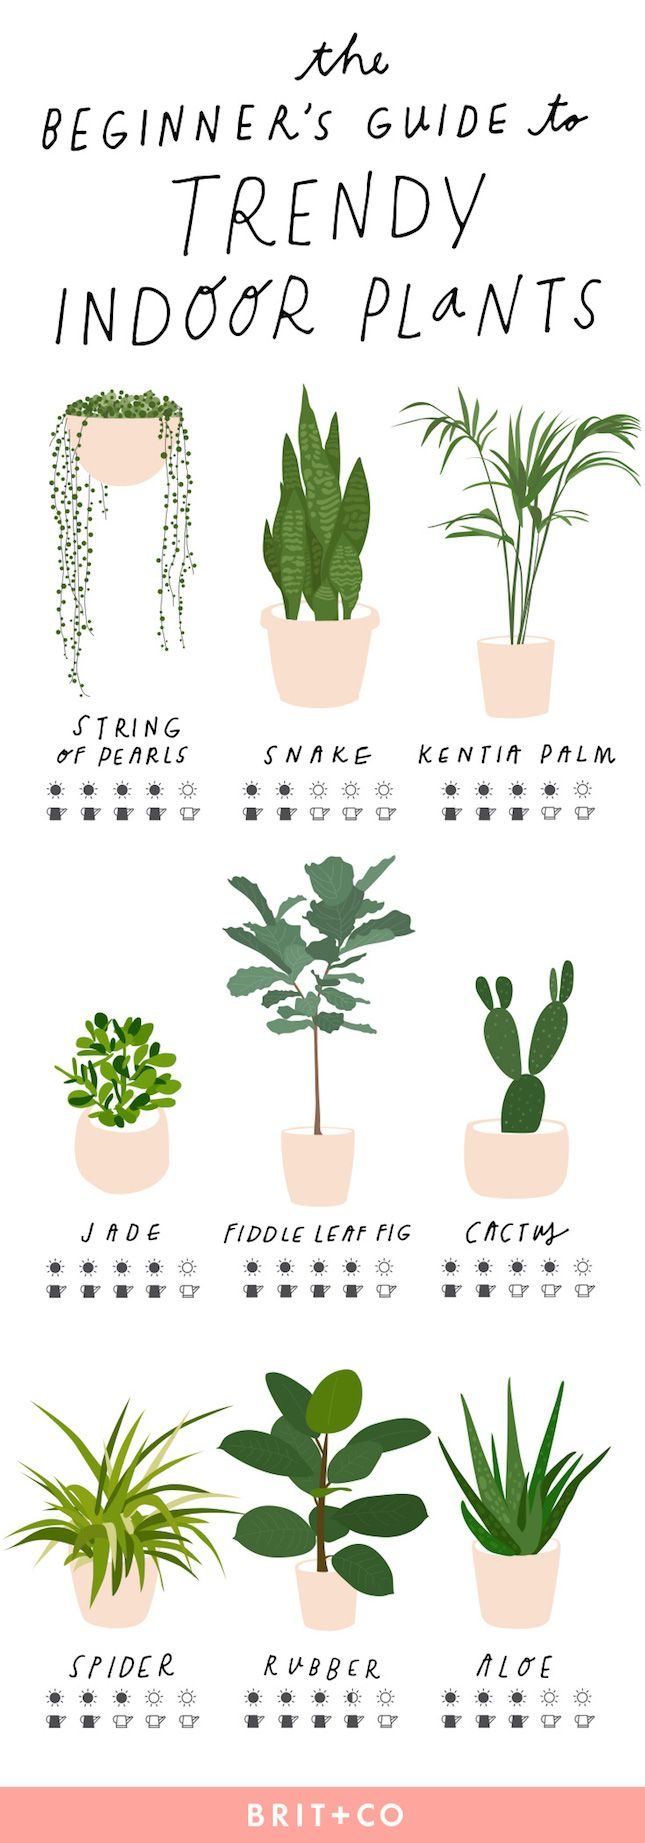 The Beginners Guide to Trendy Indoor Plants via Brit + Co